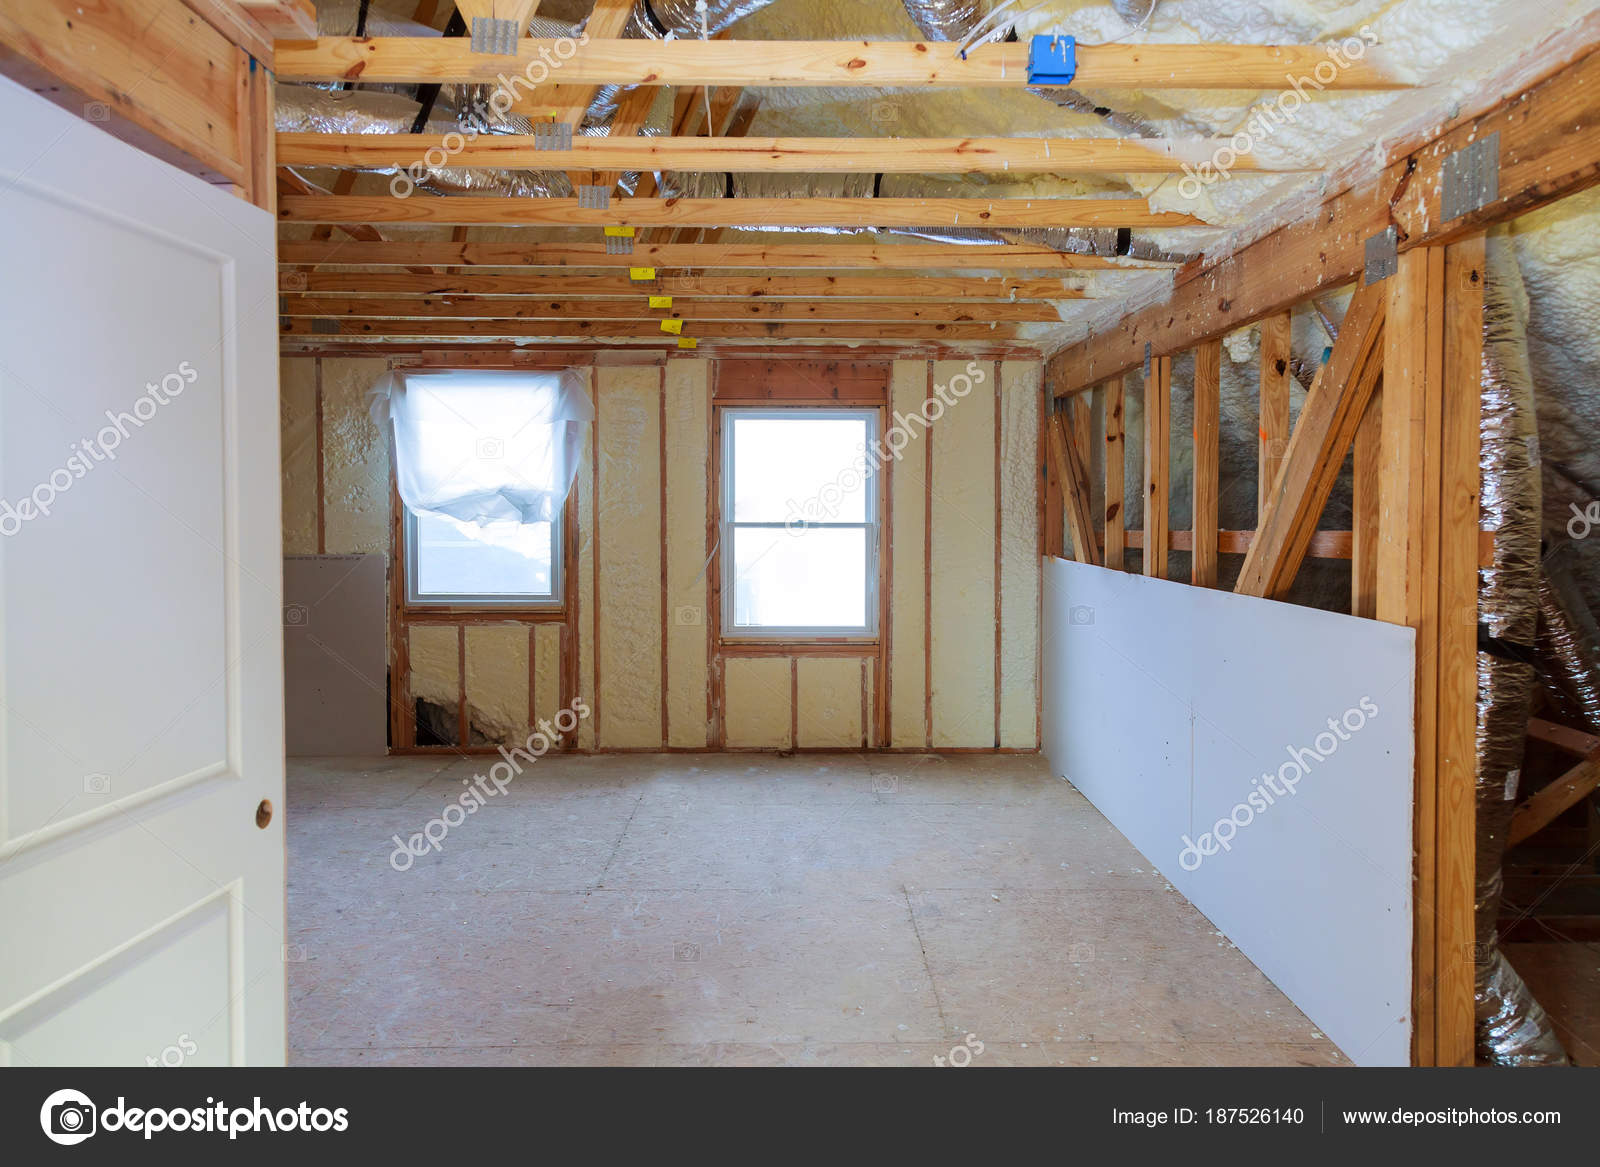 Thermal and hidro insulation wall insulation construction